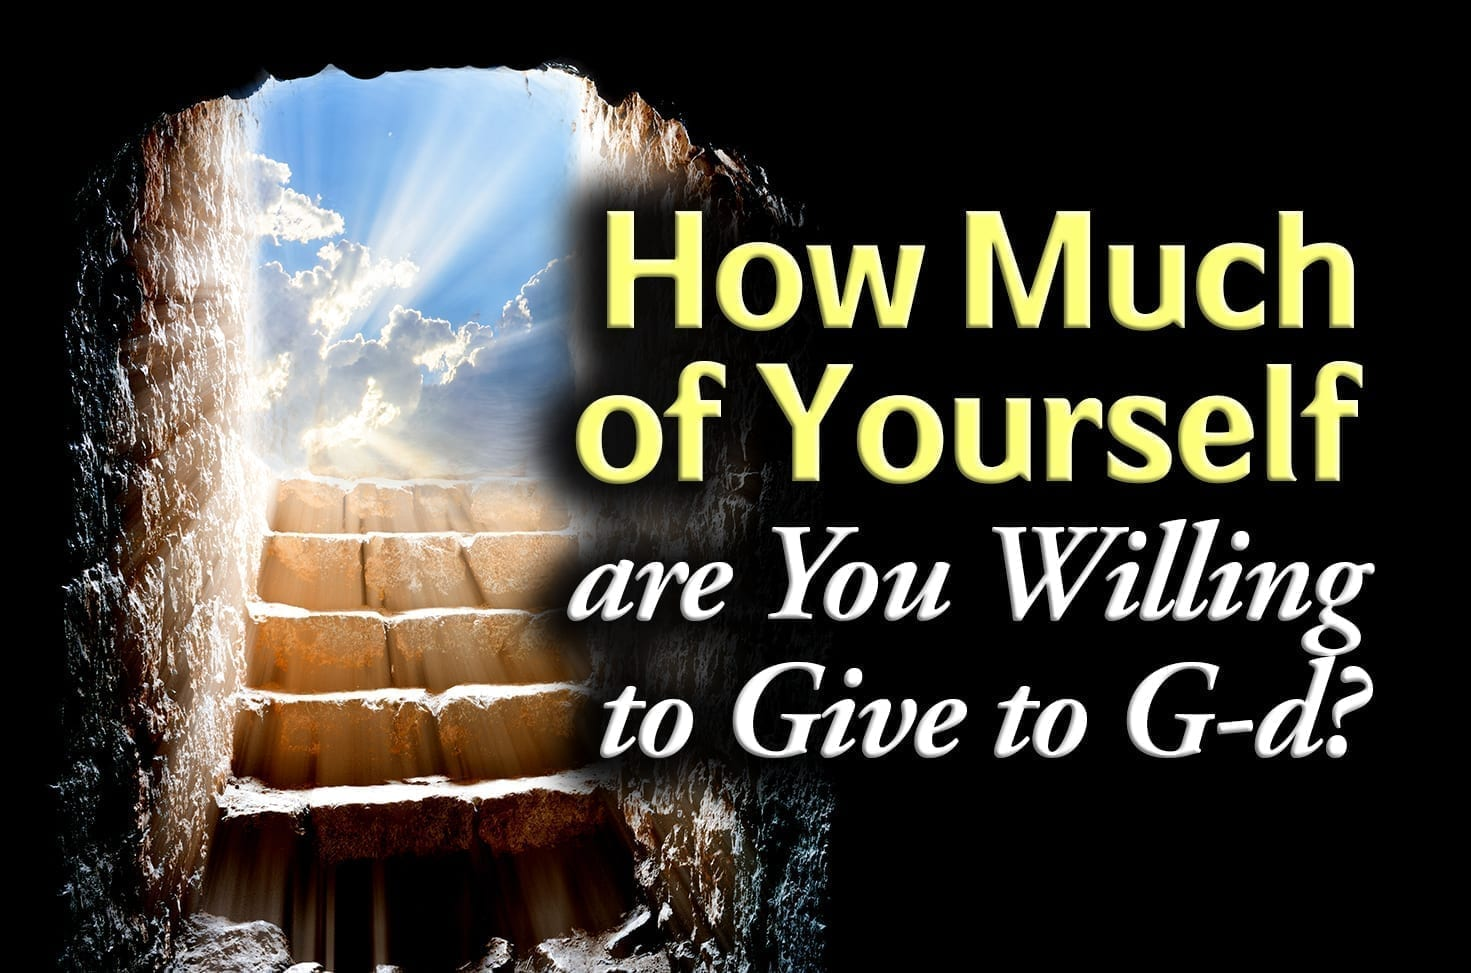 Photo of How Much of Yourself are You Willing to Give to G-d?